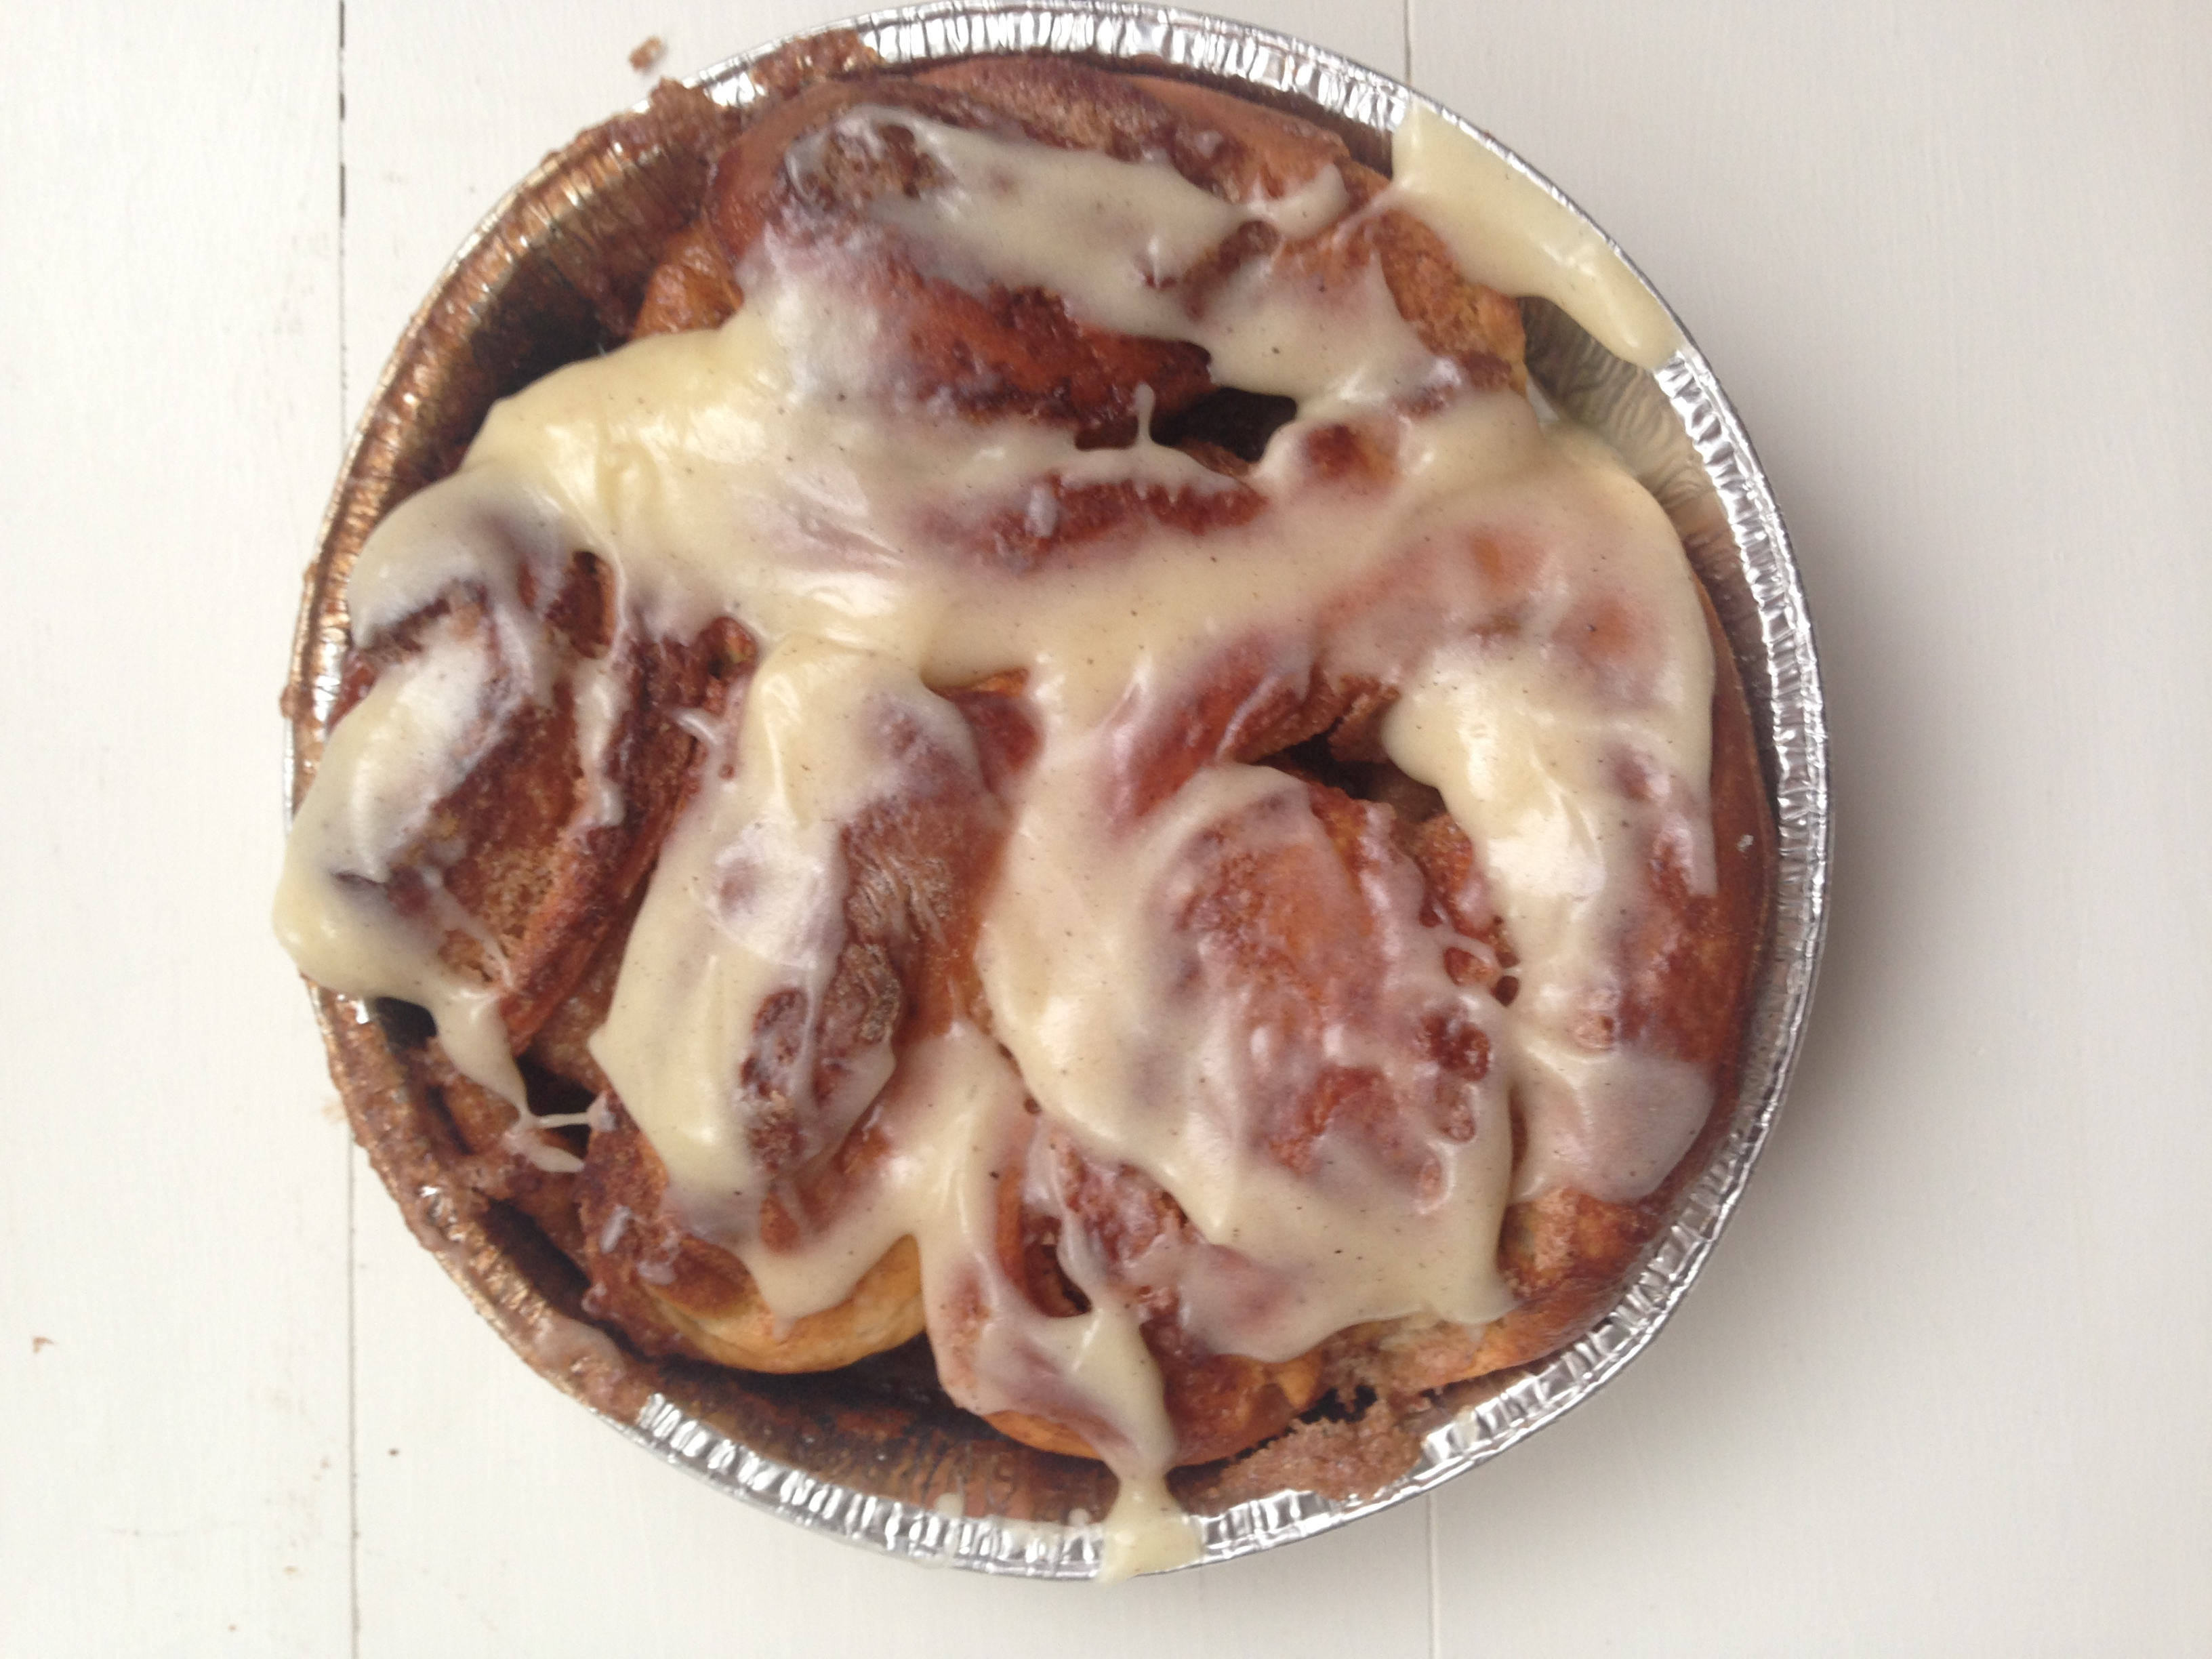 The BEST homemade cinnamon buns with cream cheese glaze - talk about brunch heaven!